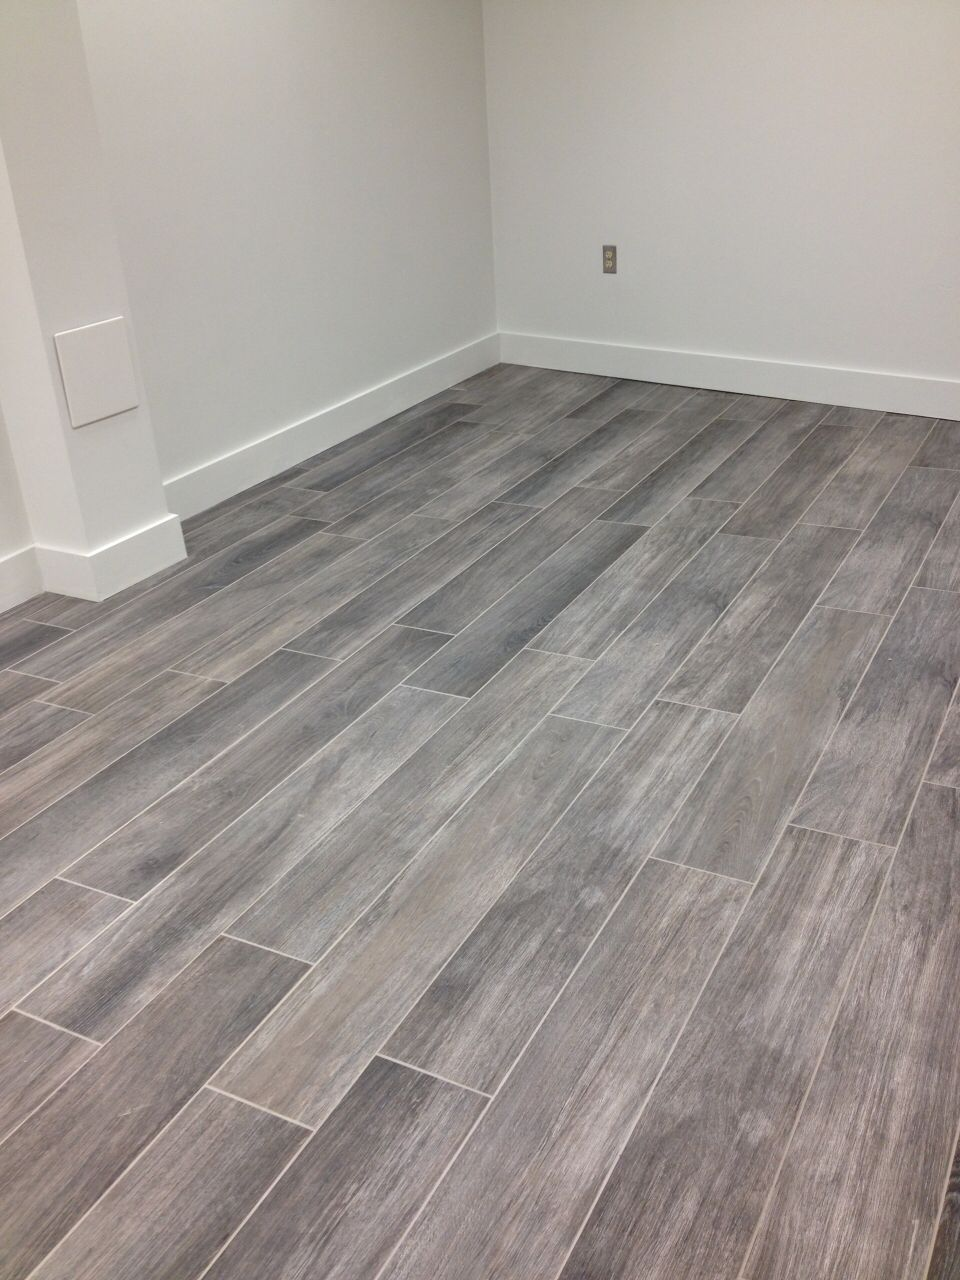 Porcelain grey wood tile Gray wood tile flooring, Grey